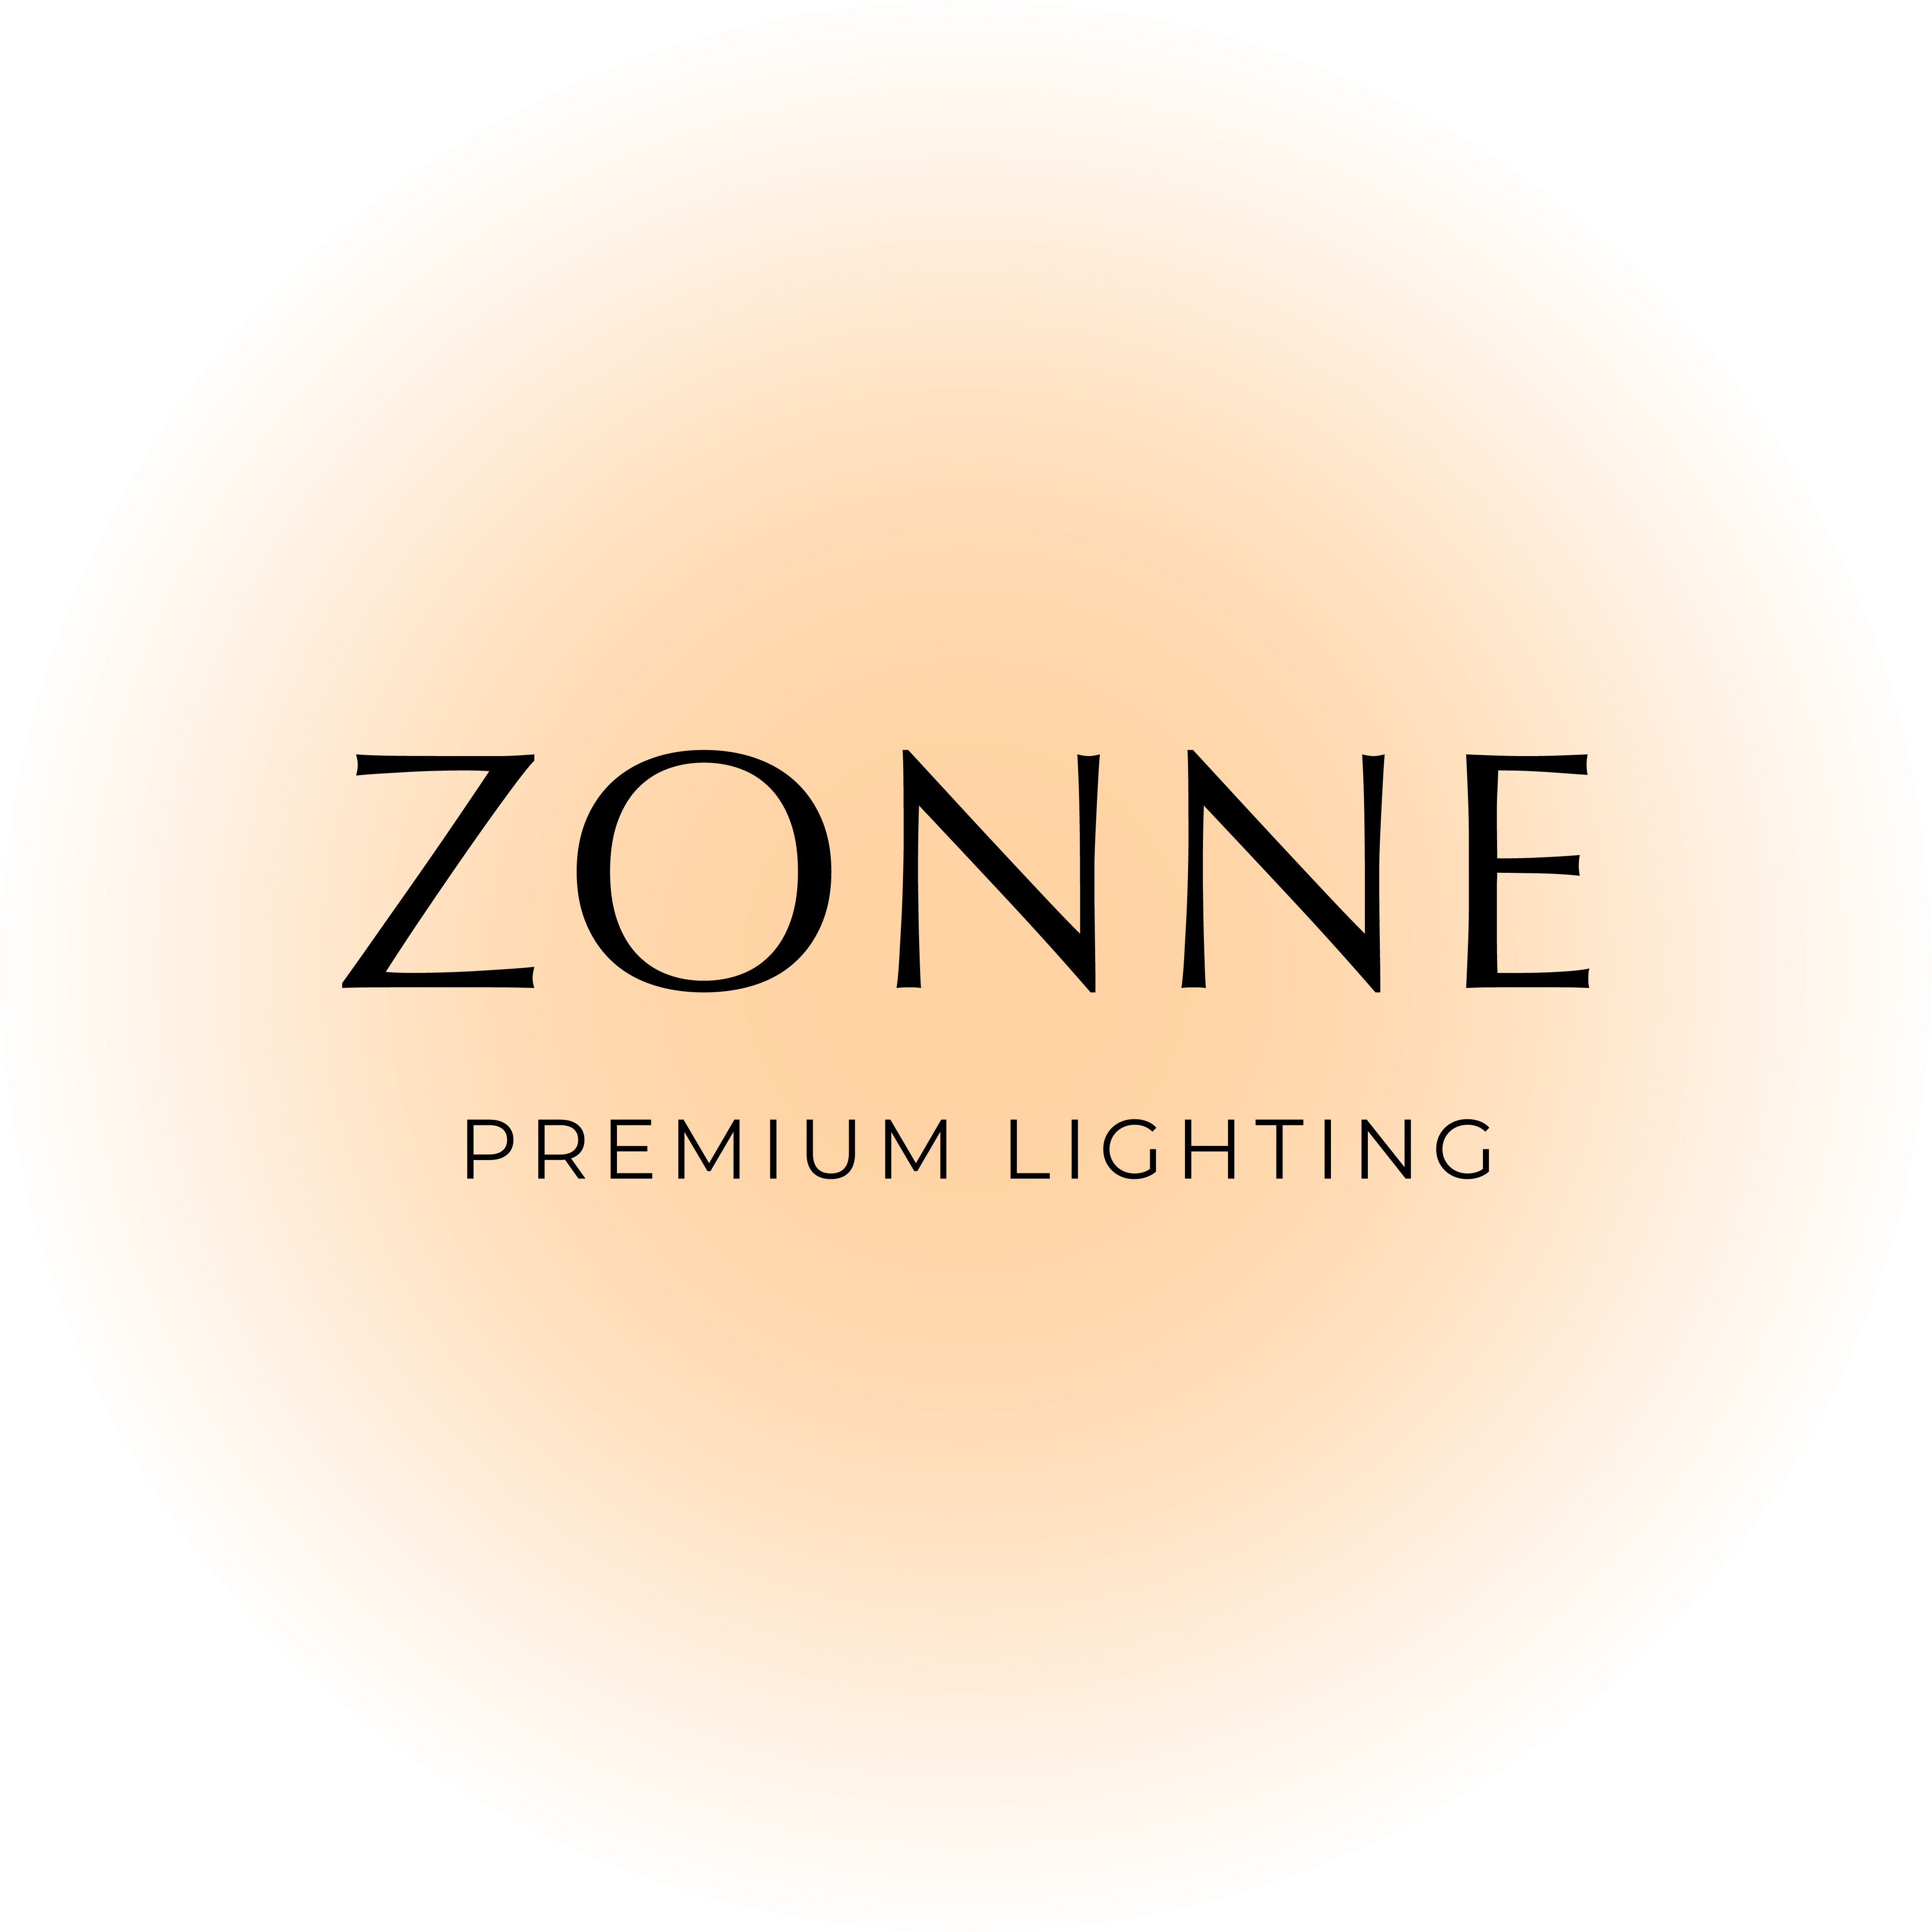 Zonne Premium Lighting Logo - Groenewoud Marketing